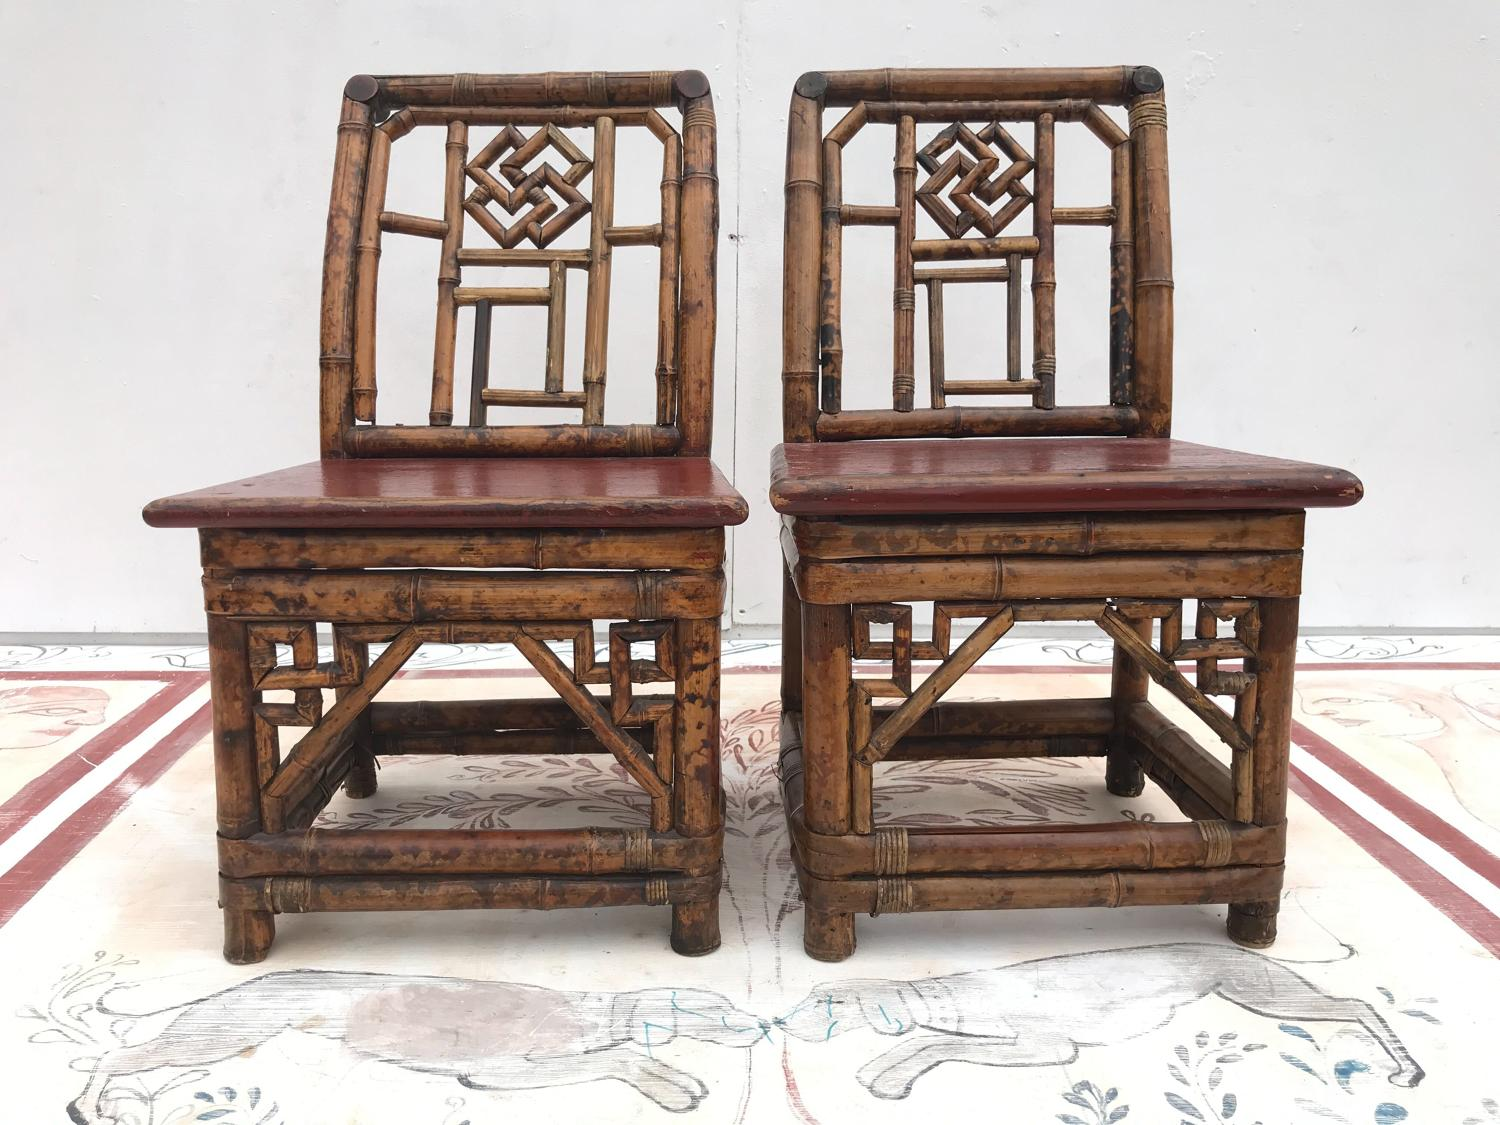 A pair of 18th century bamboo chairs